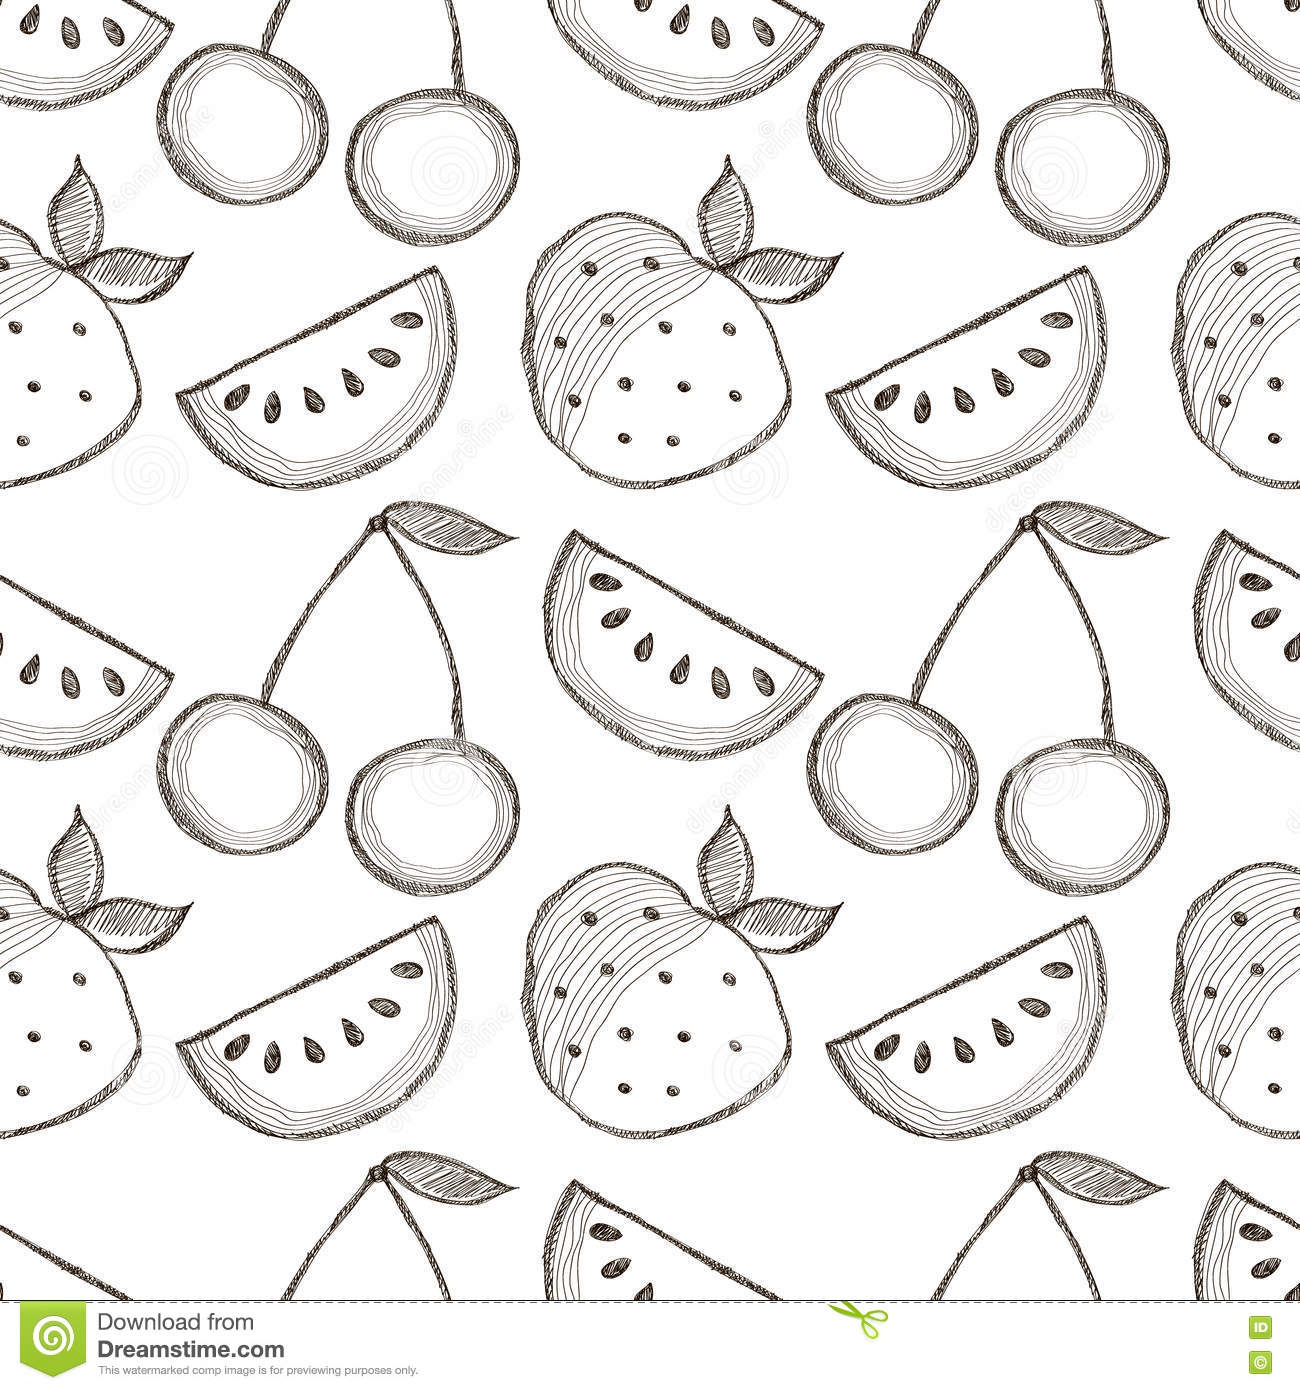 Stock Illustration Seamless Vector Pattern Hand Drawn Fruits Black White Background Watermelons Srawberries Cherries Series Image71708450 on Eating Fruit